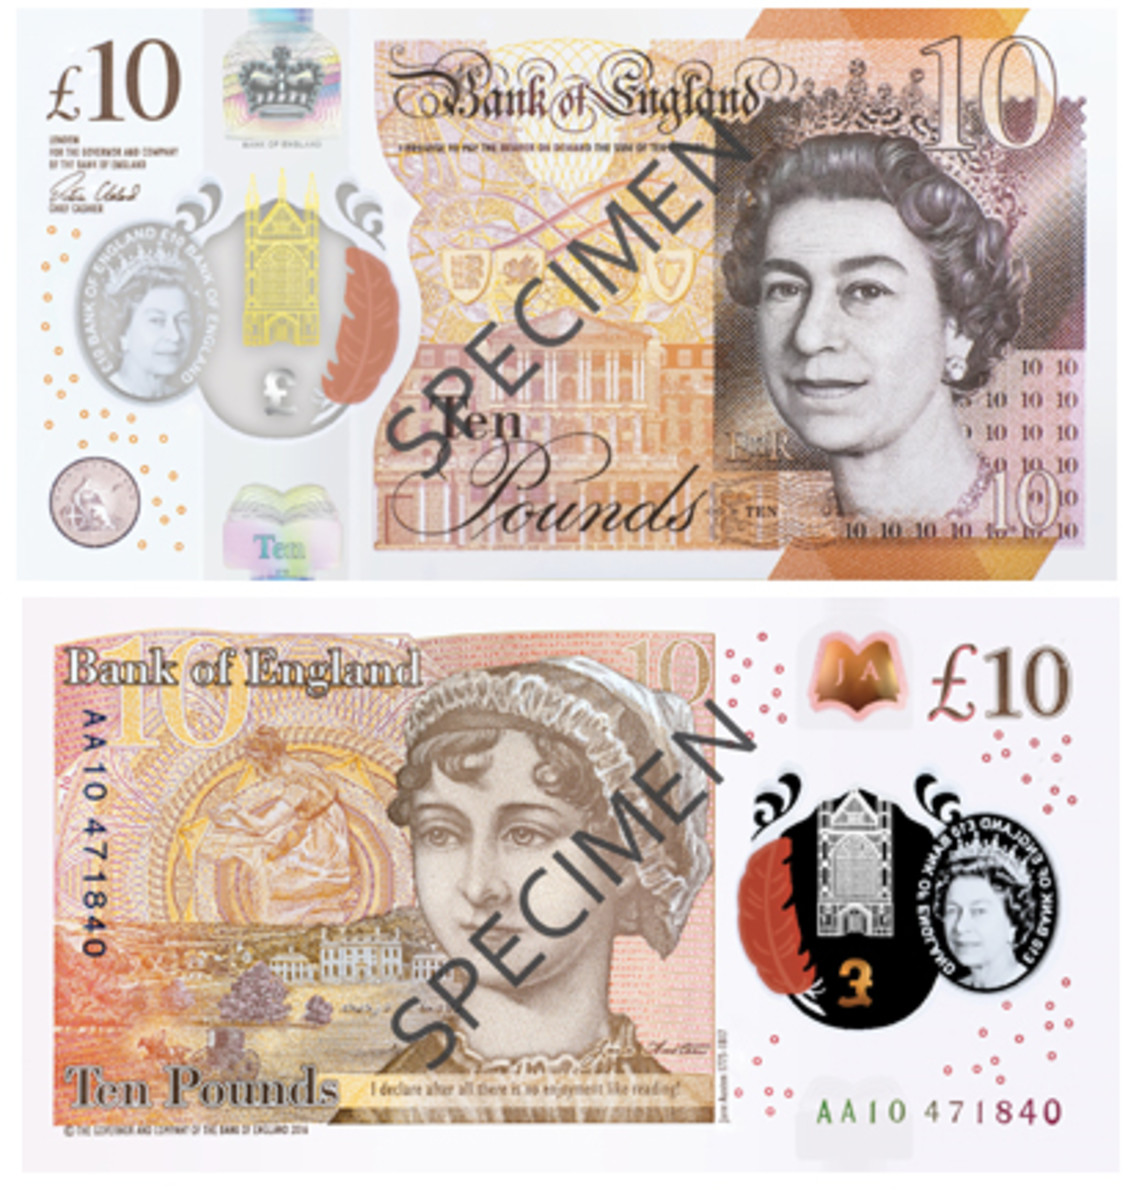 Face and back of the Bank of England's new Jane Austen polymer £10 note. (Images courtesy and © Bank of England [2017])